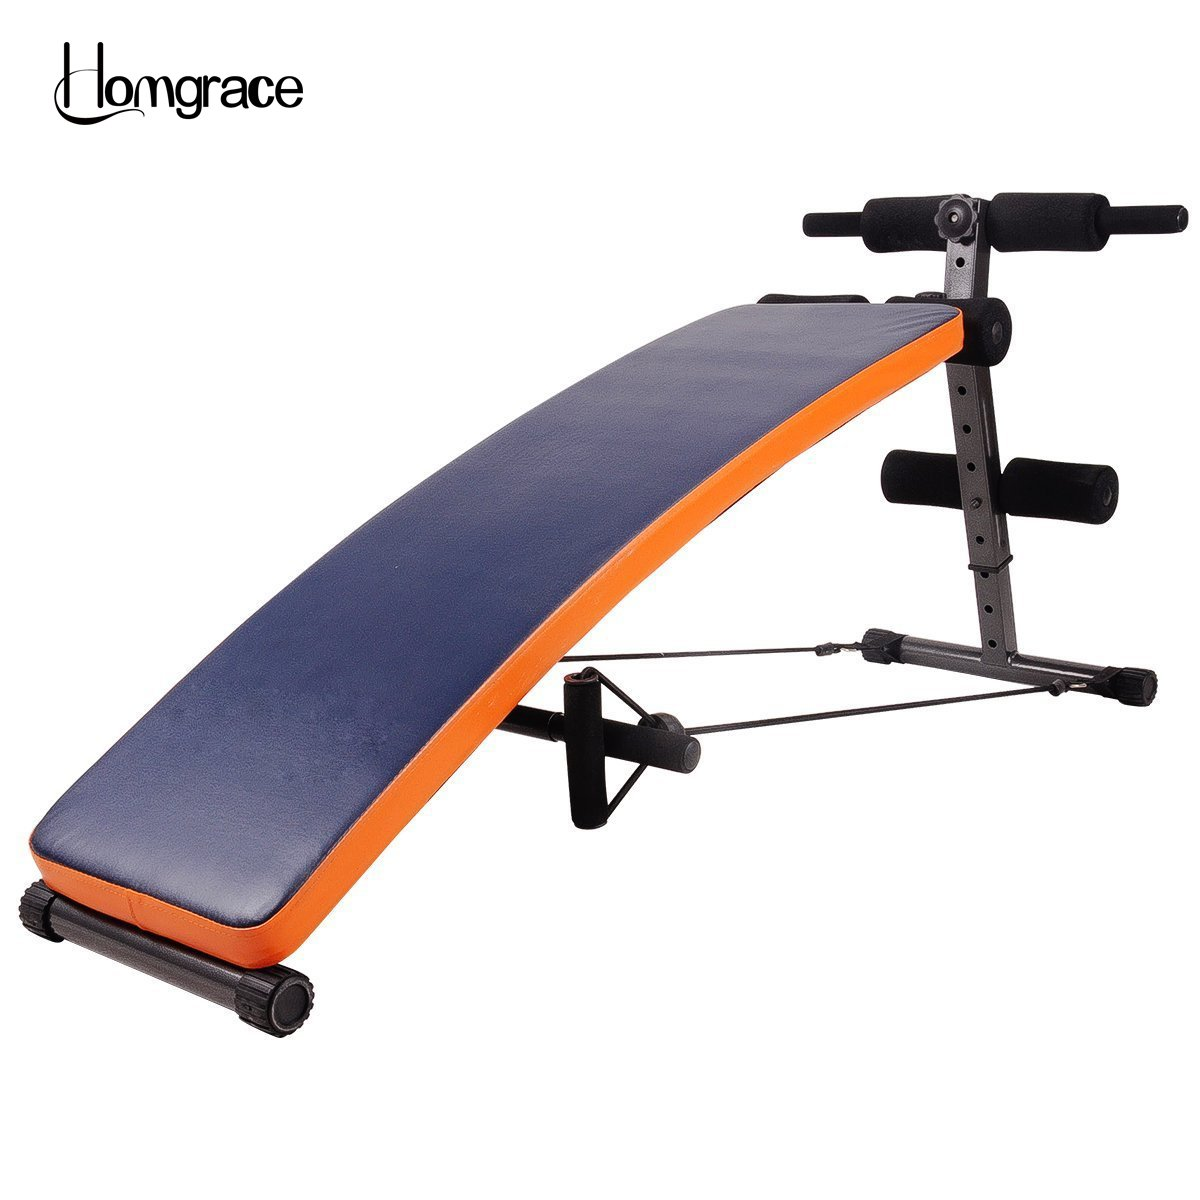 Homgrace Sit Up Ab Bench Incline Decline Adjustable Workout Sit Up Bench With Replaceable Leather Cover Slant Crunch Board Abs Benches Buy Online In Aruba At Aruba Desertcart Com Productid 52968246